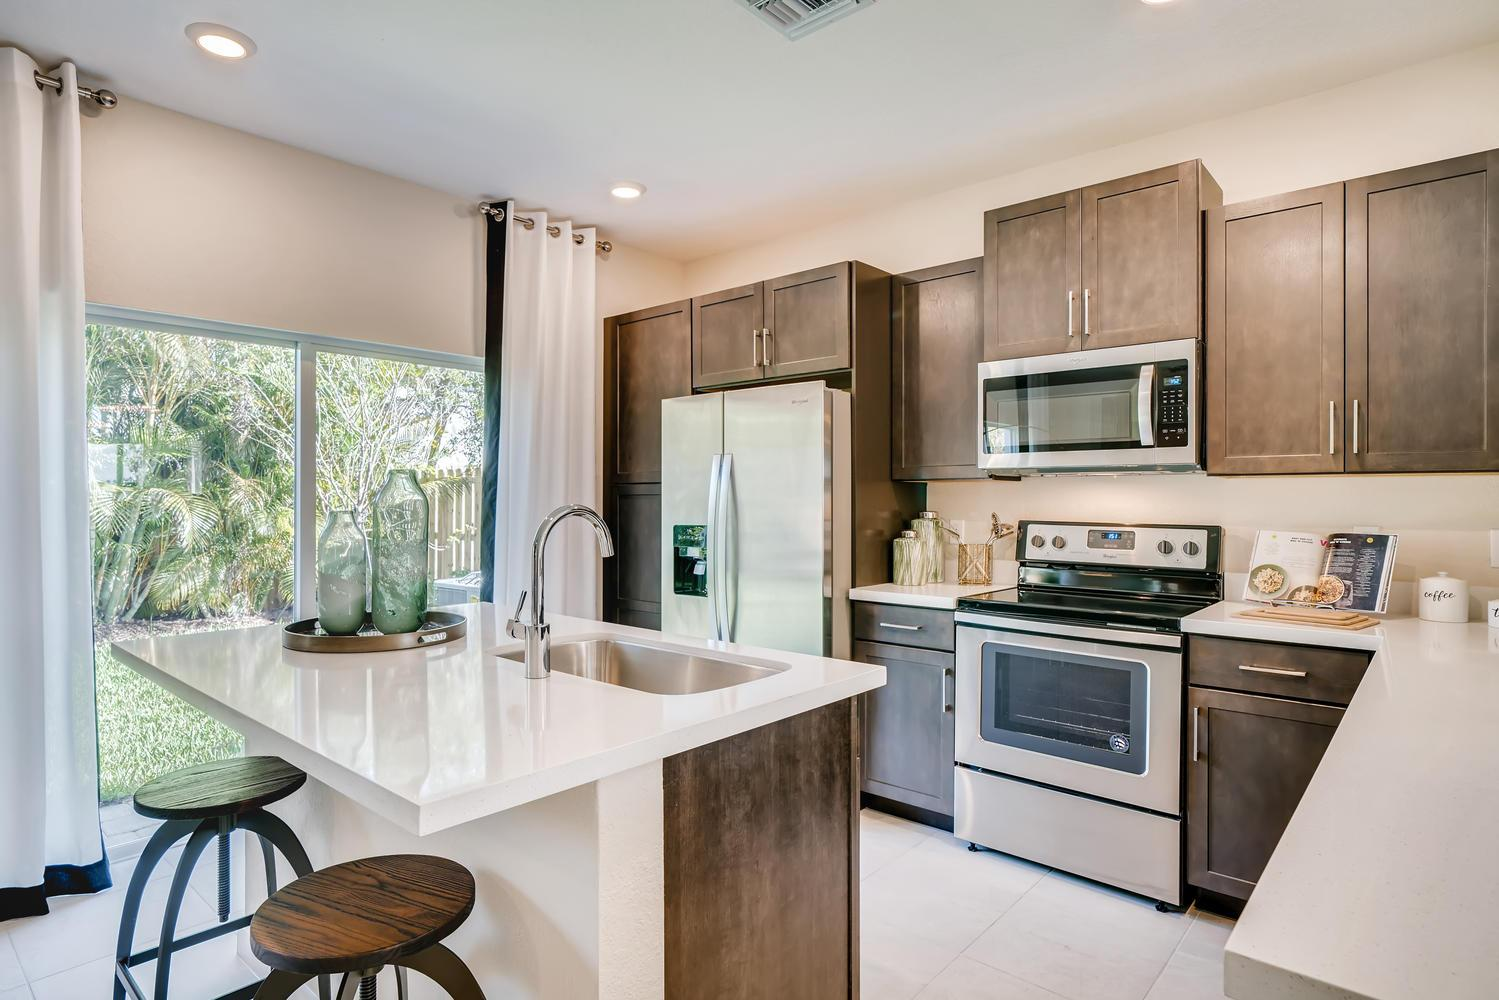 Kitchen featured in the Coventry By D.R. Horton in Miami-Dade County, FL